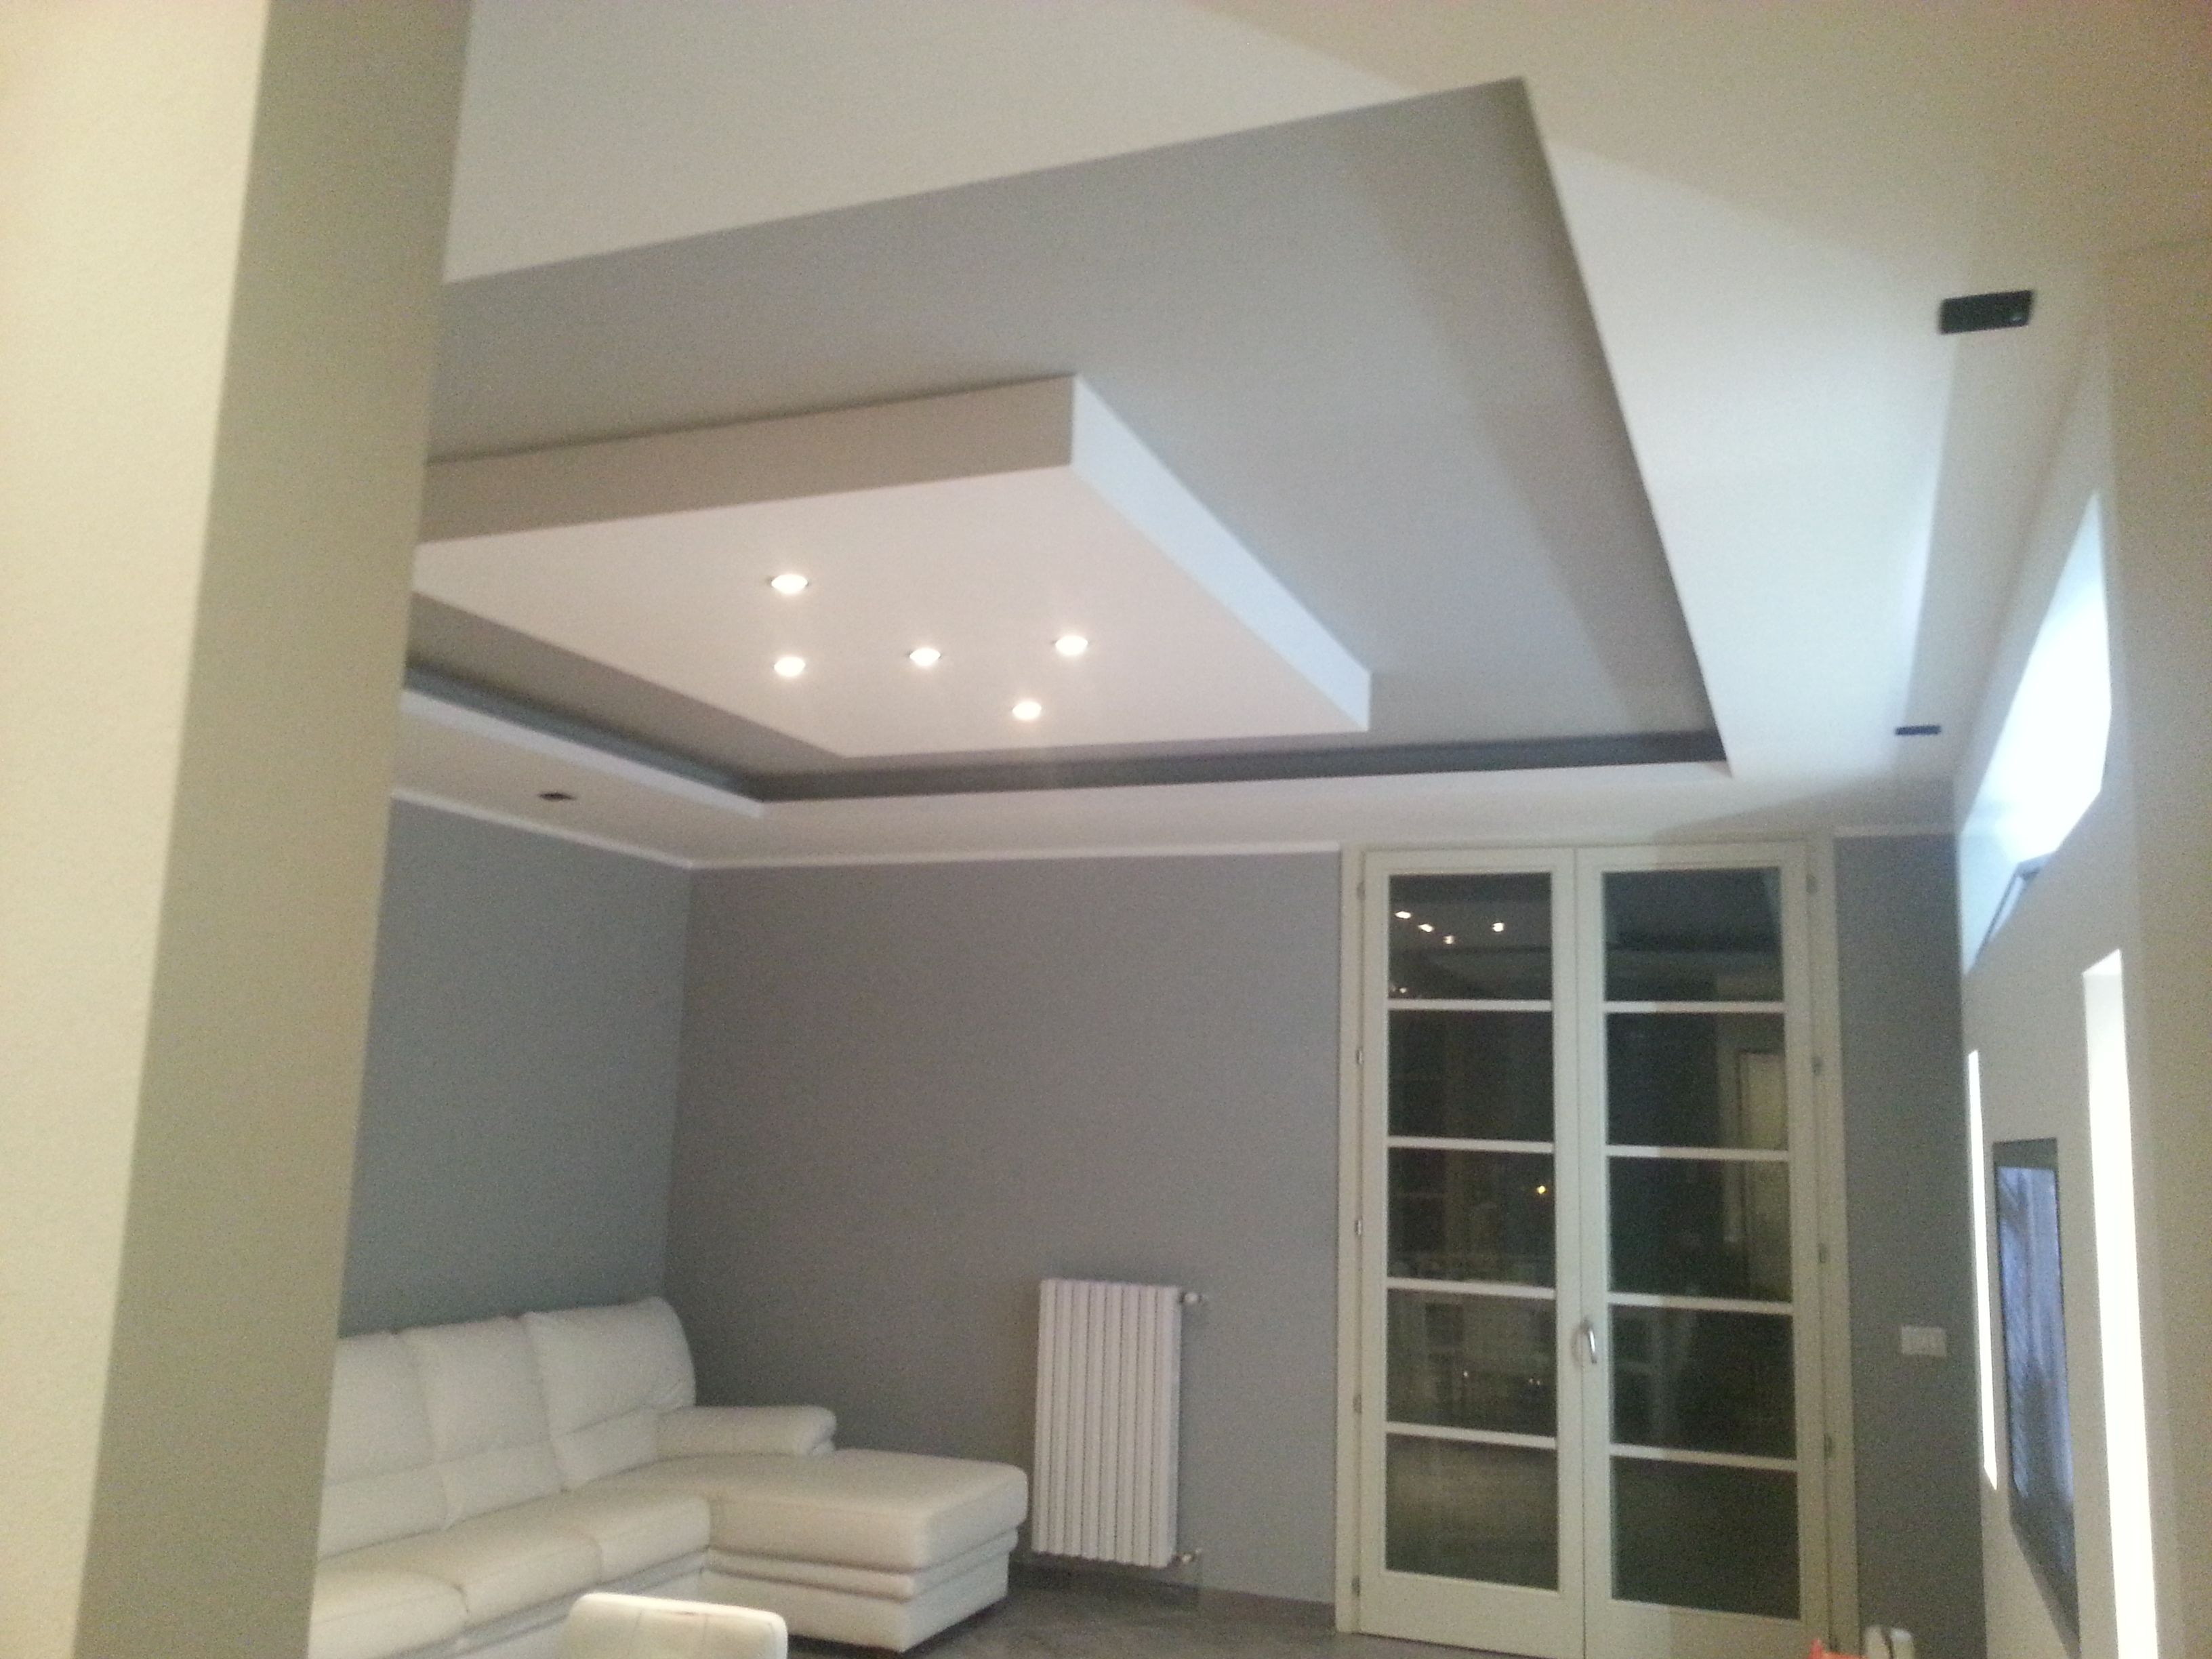 Velette in cartongesso controsoffitti ceiling for Arredamento in cartongesso